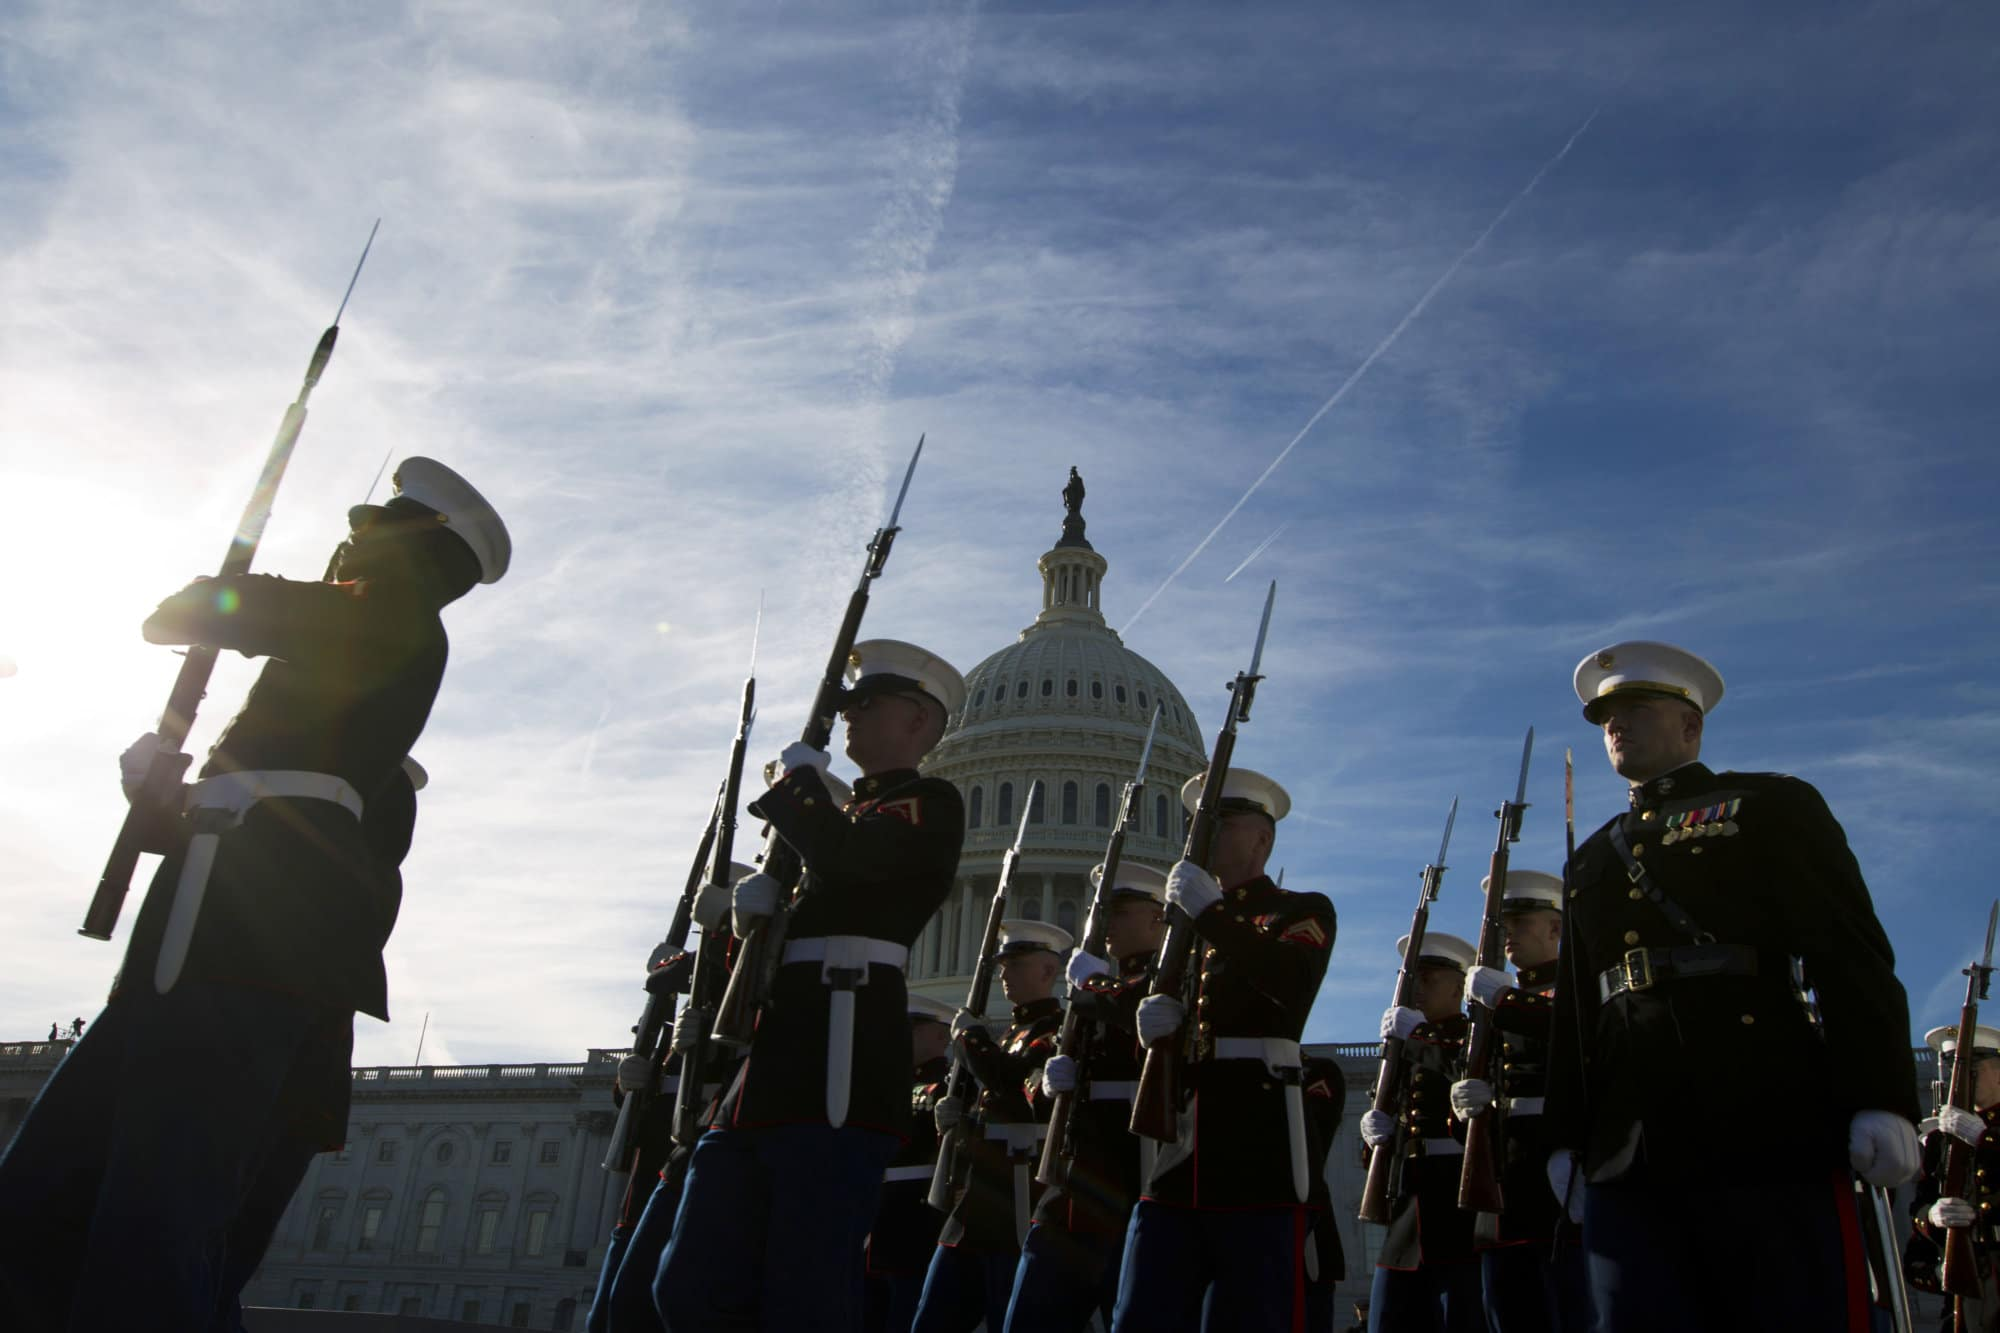 Marine honor guard prepares for the arrival of former President George H. W. Bush, Monday, Dec. 3, 2018, at U.S Capitol in Washington.  Bush arrives back to Washington for a final time Monday, heading for the Capitol to lie in state as the nation paid tribute to the 41st president for a lifetime of service.  (AP Photo/Jose Luis Magana)